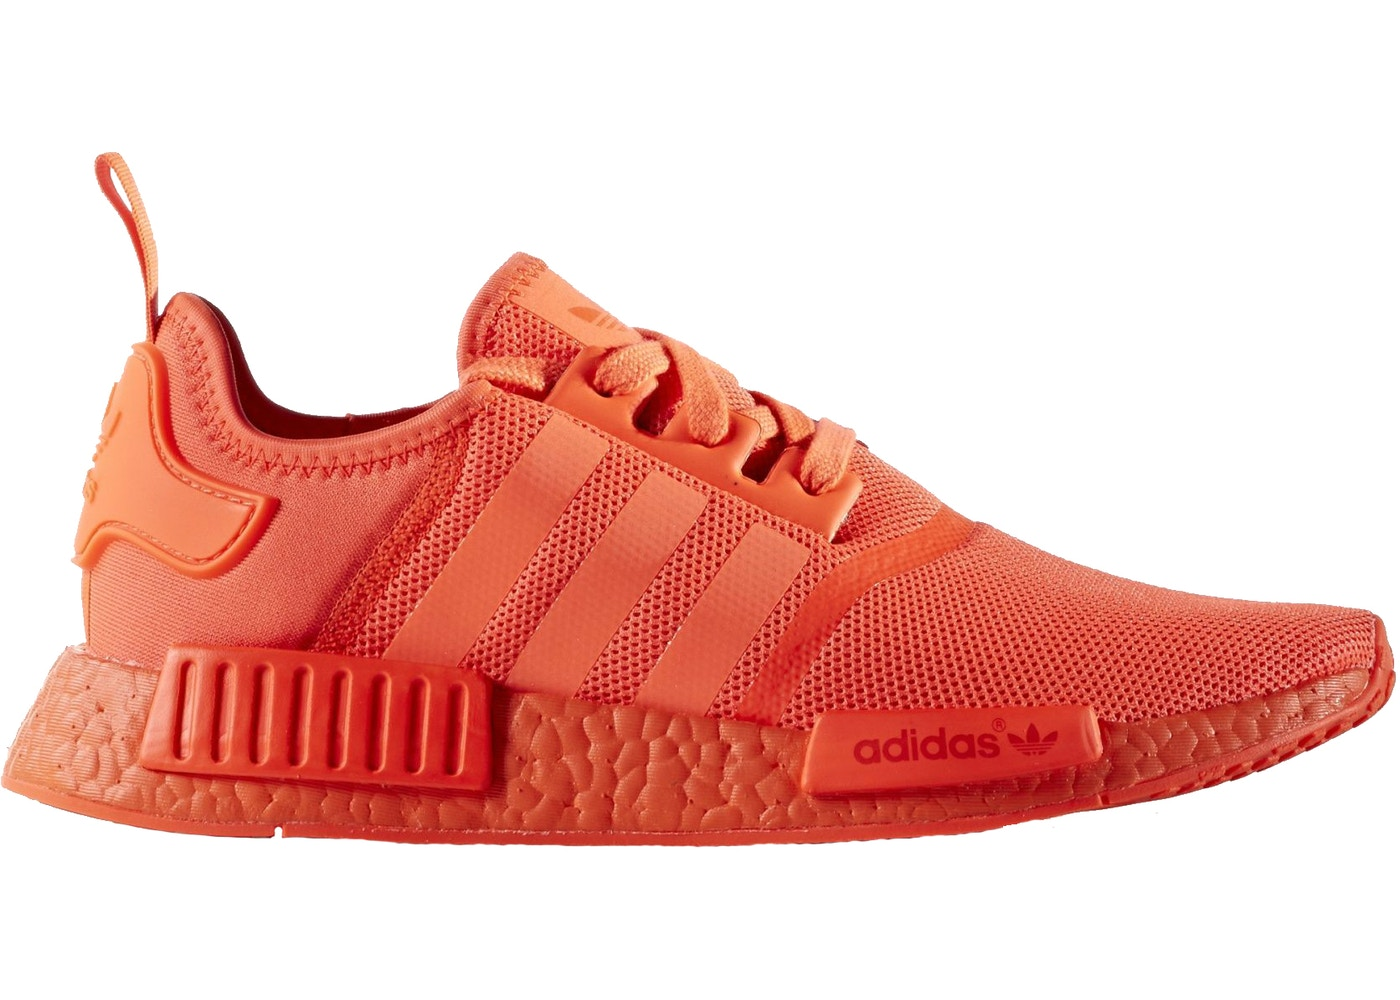 Adidas Nmd R1 Triple Solar Red S31507